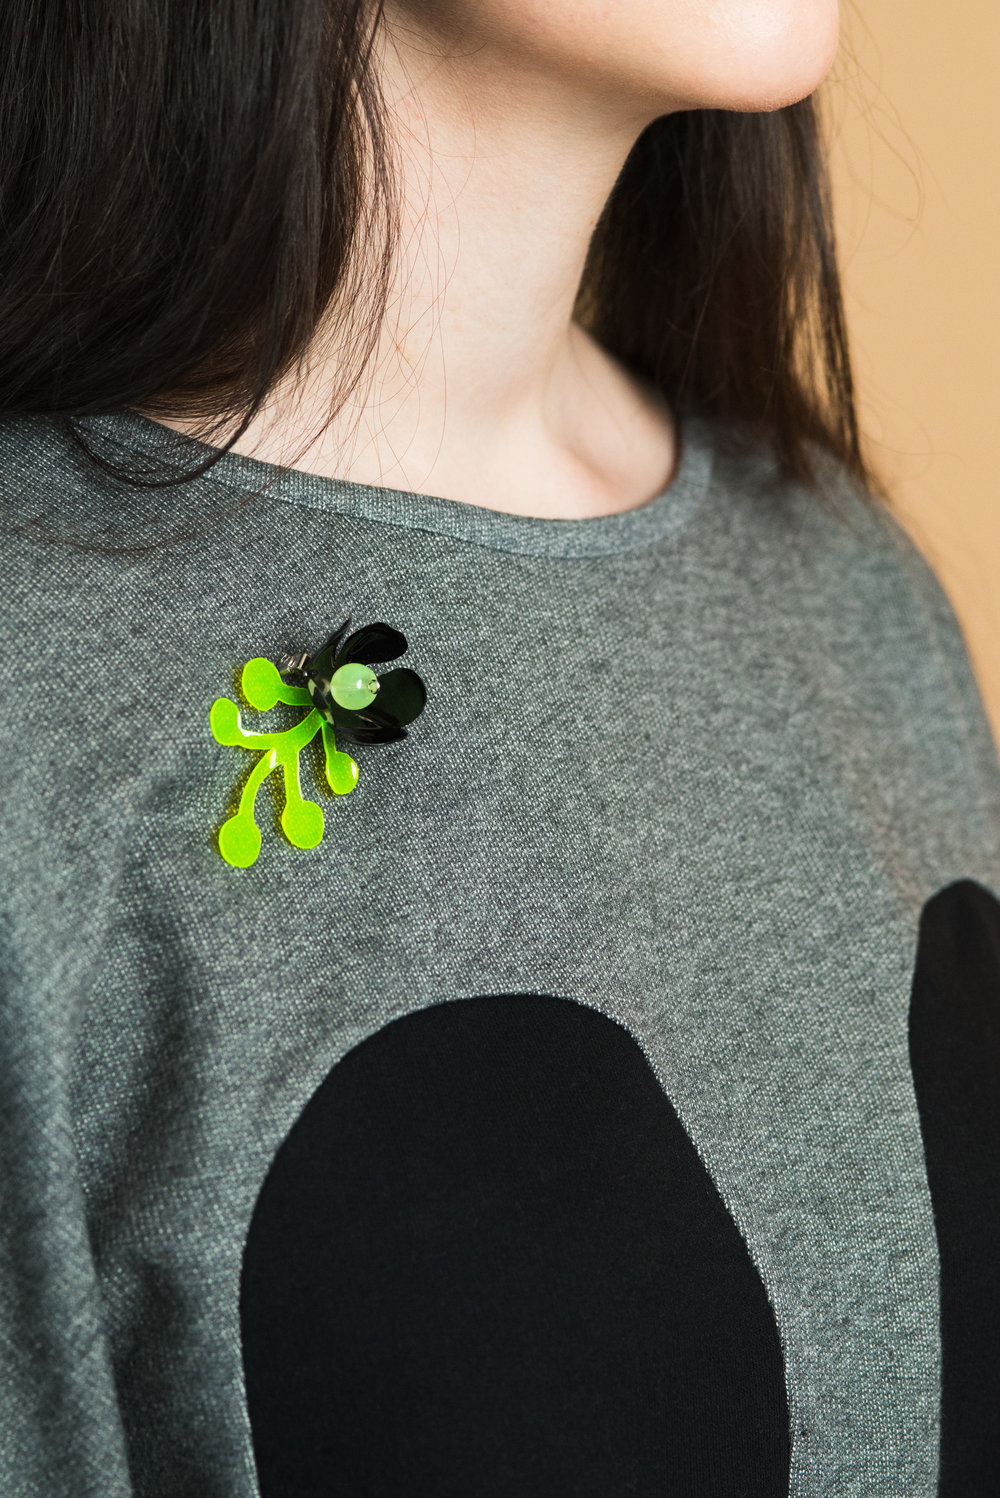 brooch made from plastic bottles